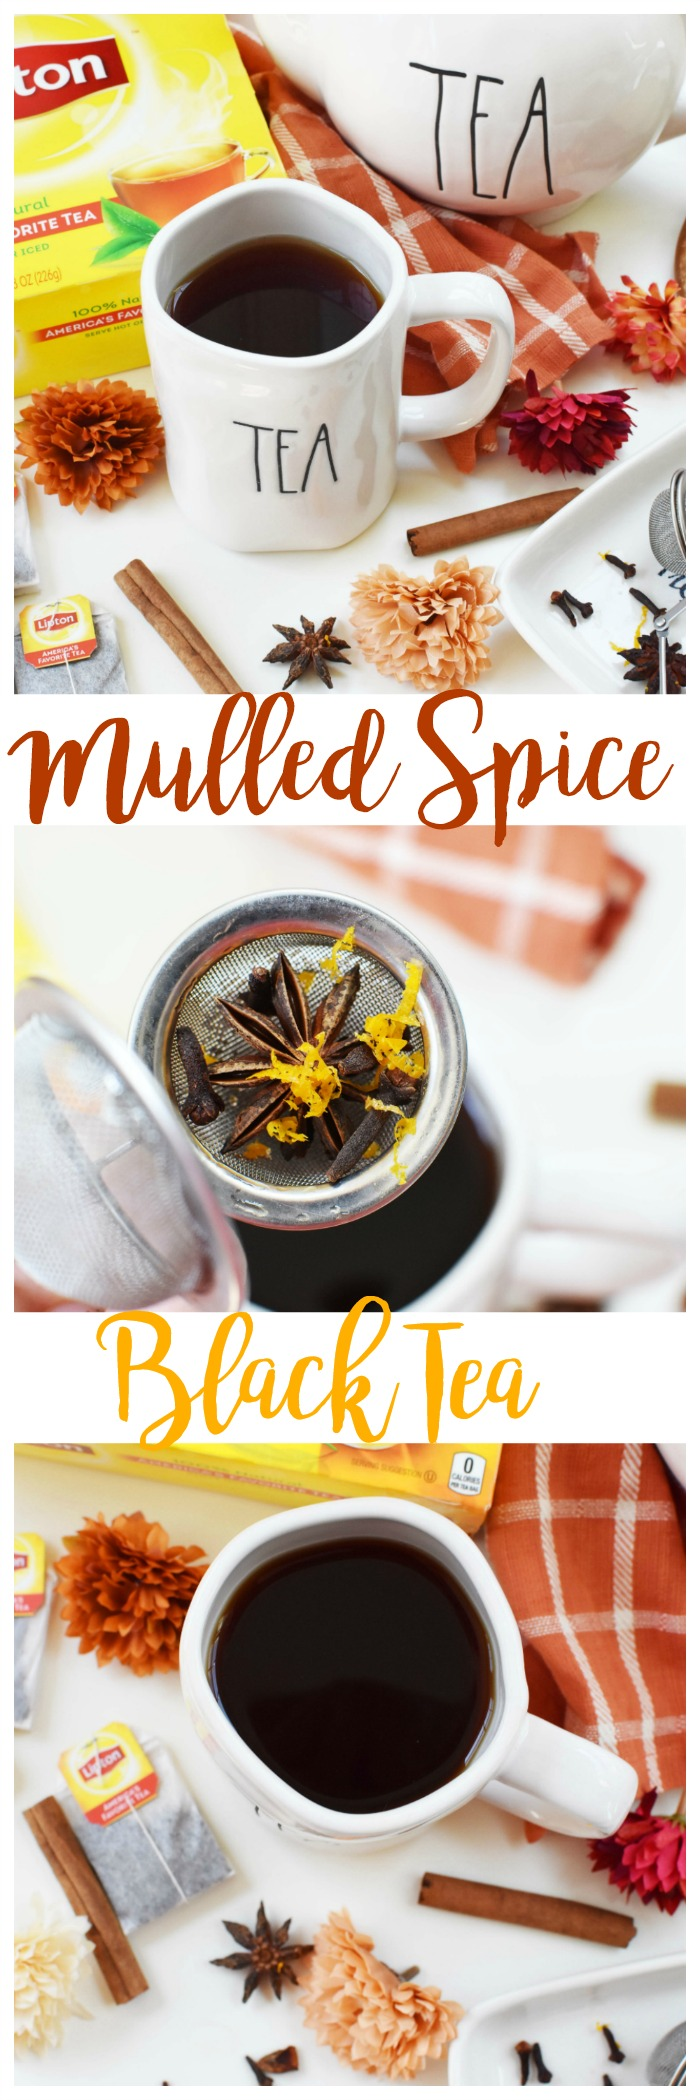 Perfect for Fall- Mulled Spice Black Hot Tea. A warm, and spicy fall tea drink that is low in calories but high in flavor. Make this mulled tea recipe for one of 4! Recipe includes directions for both!